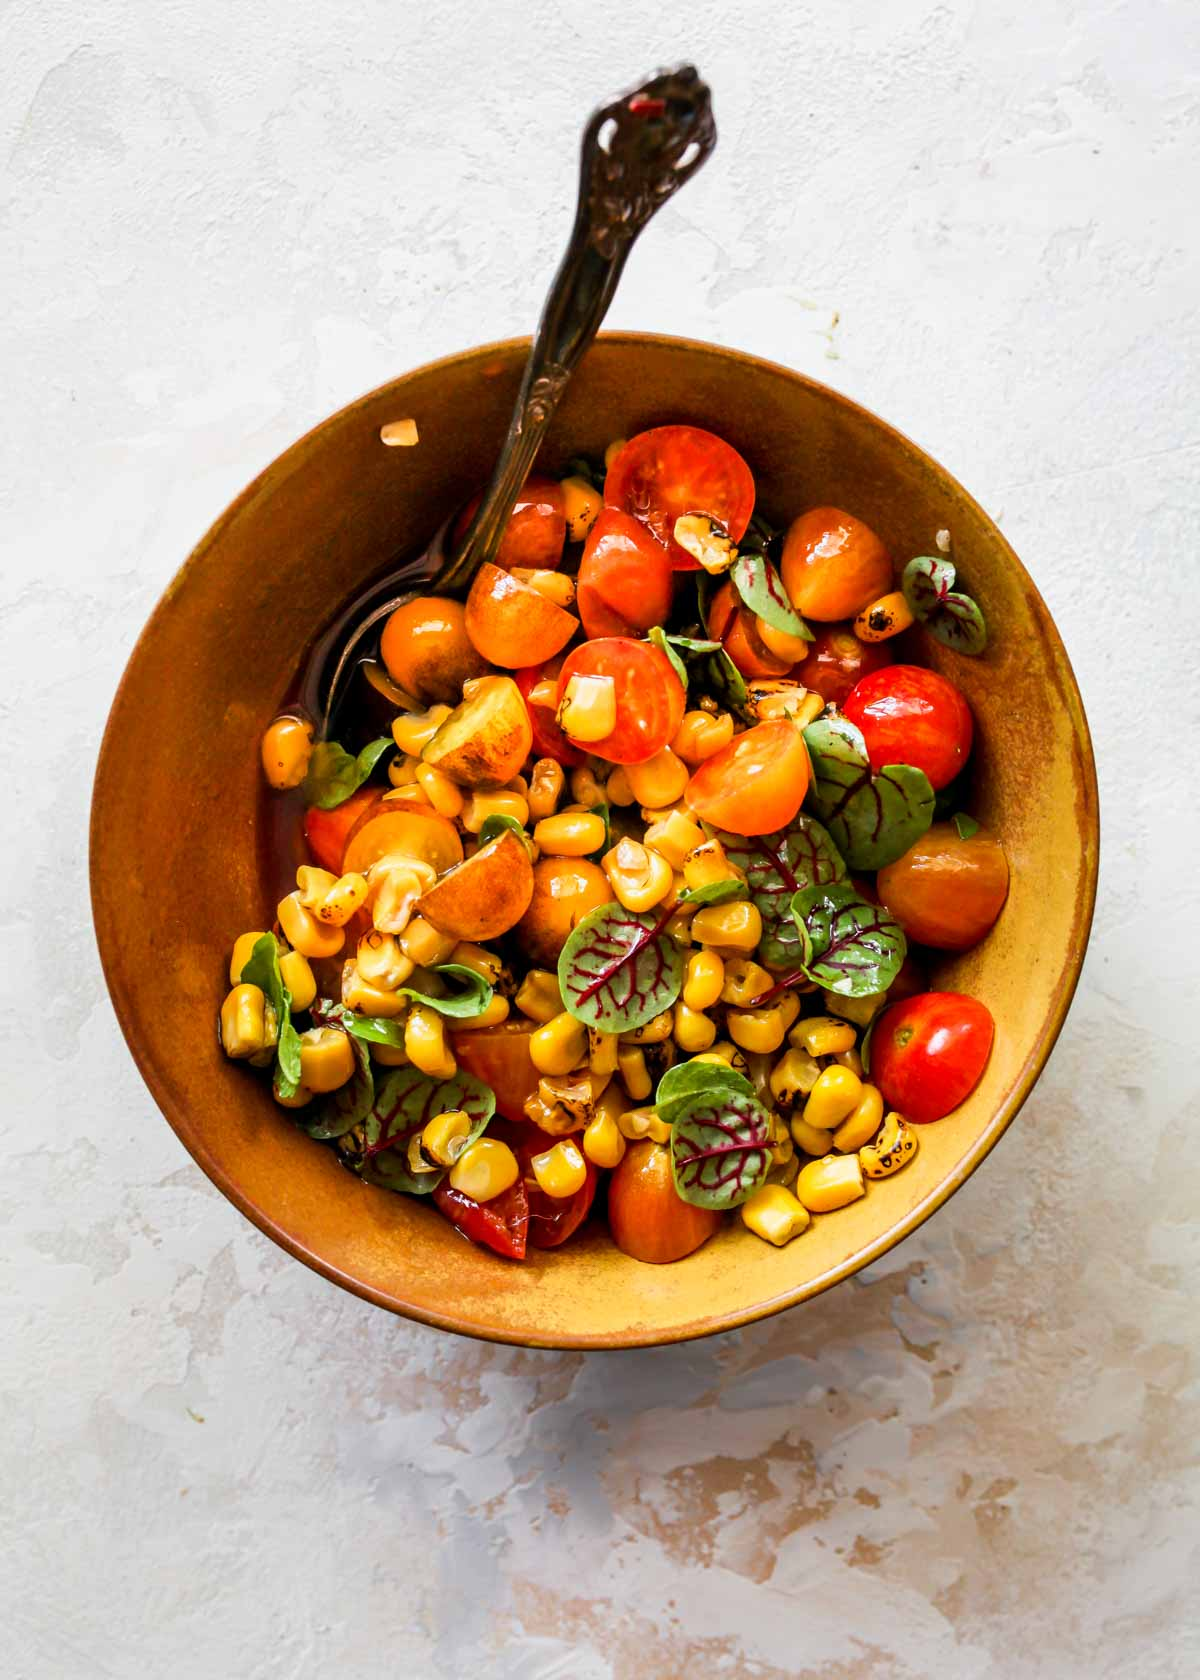 Cherry tomatoes, corn, basil, vinegar, and olive oil being stirred in a bowl